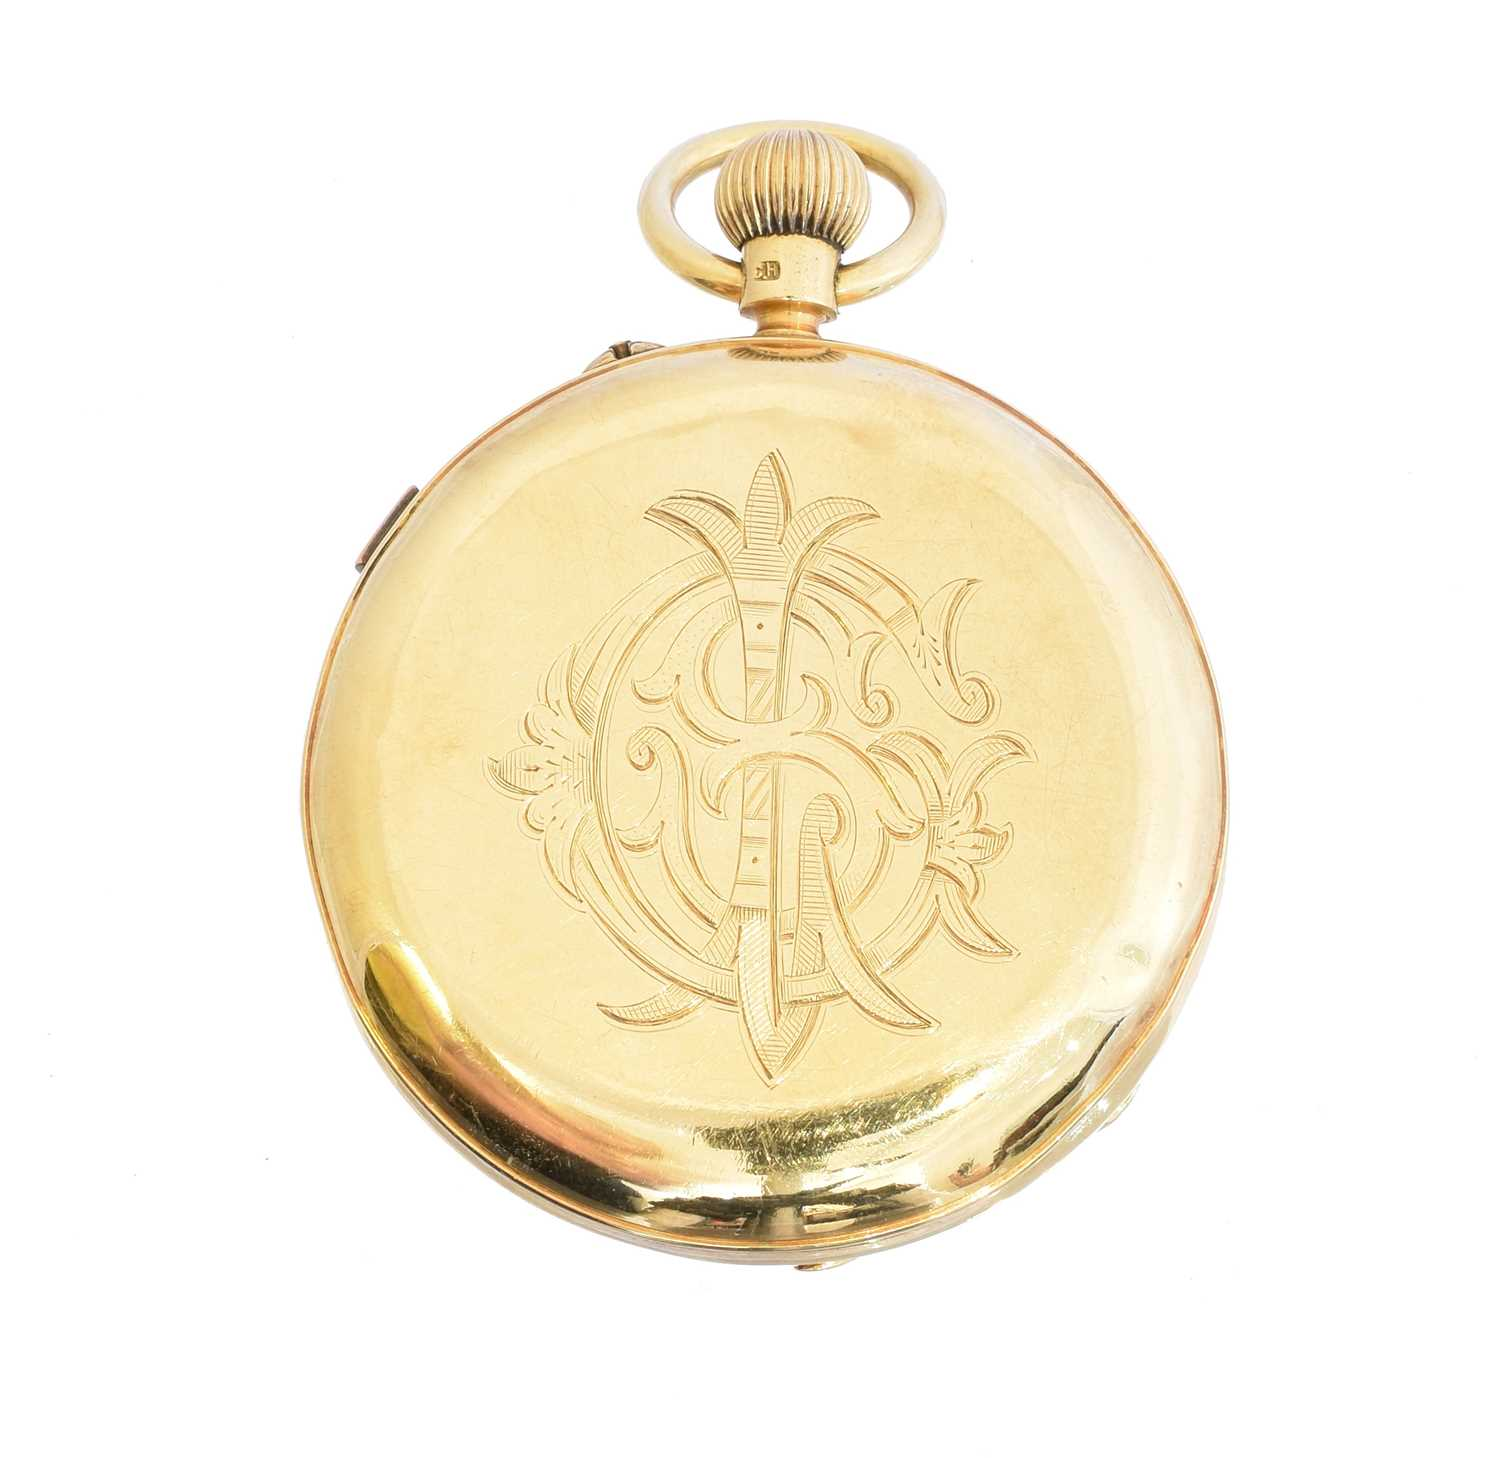 An 18ct gold open face pocket watch by W. Batty & Sons Ltd., - Image 2 of 3